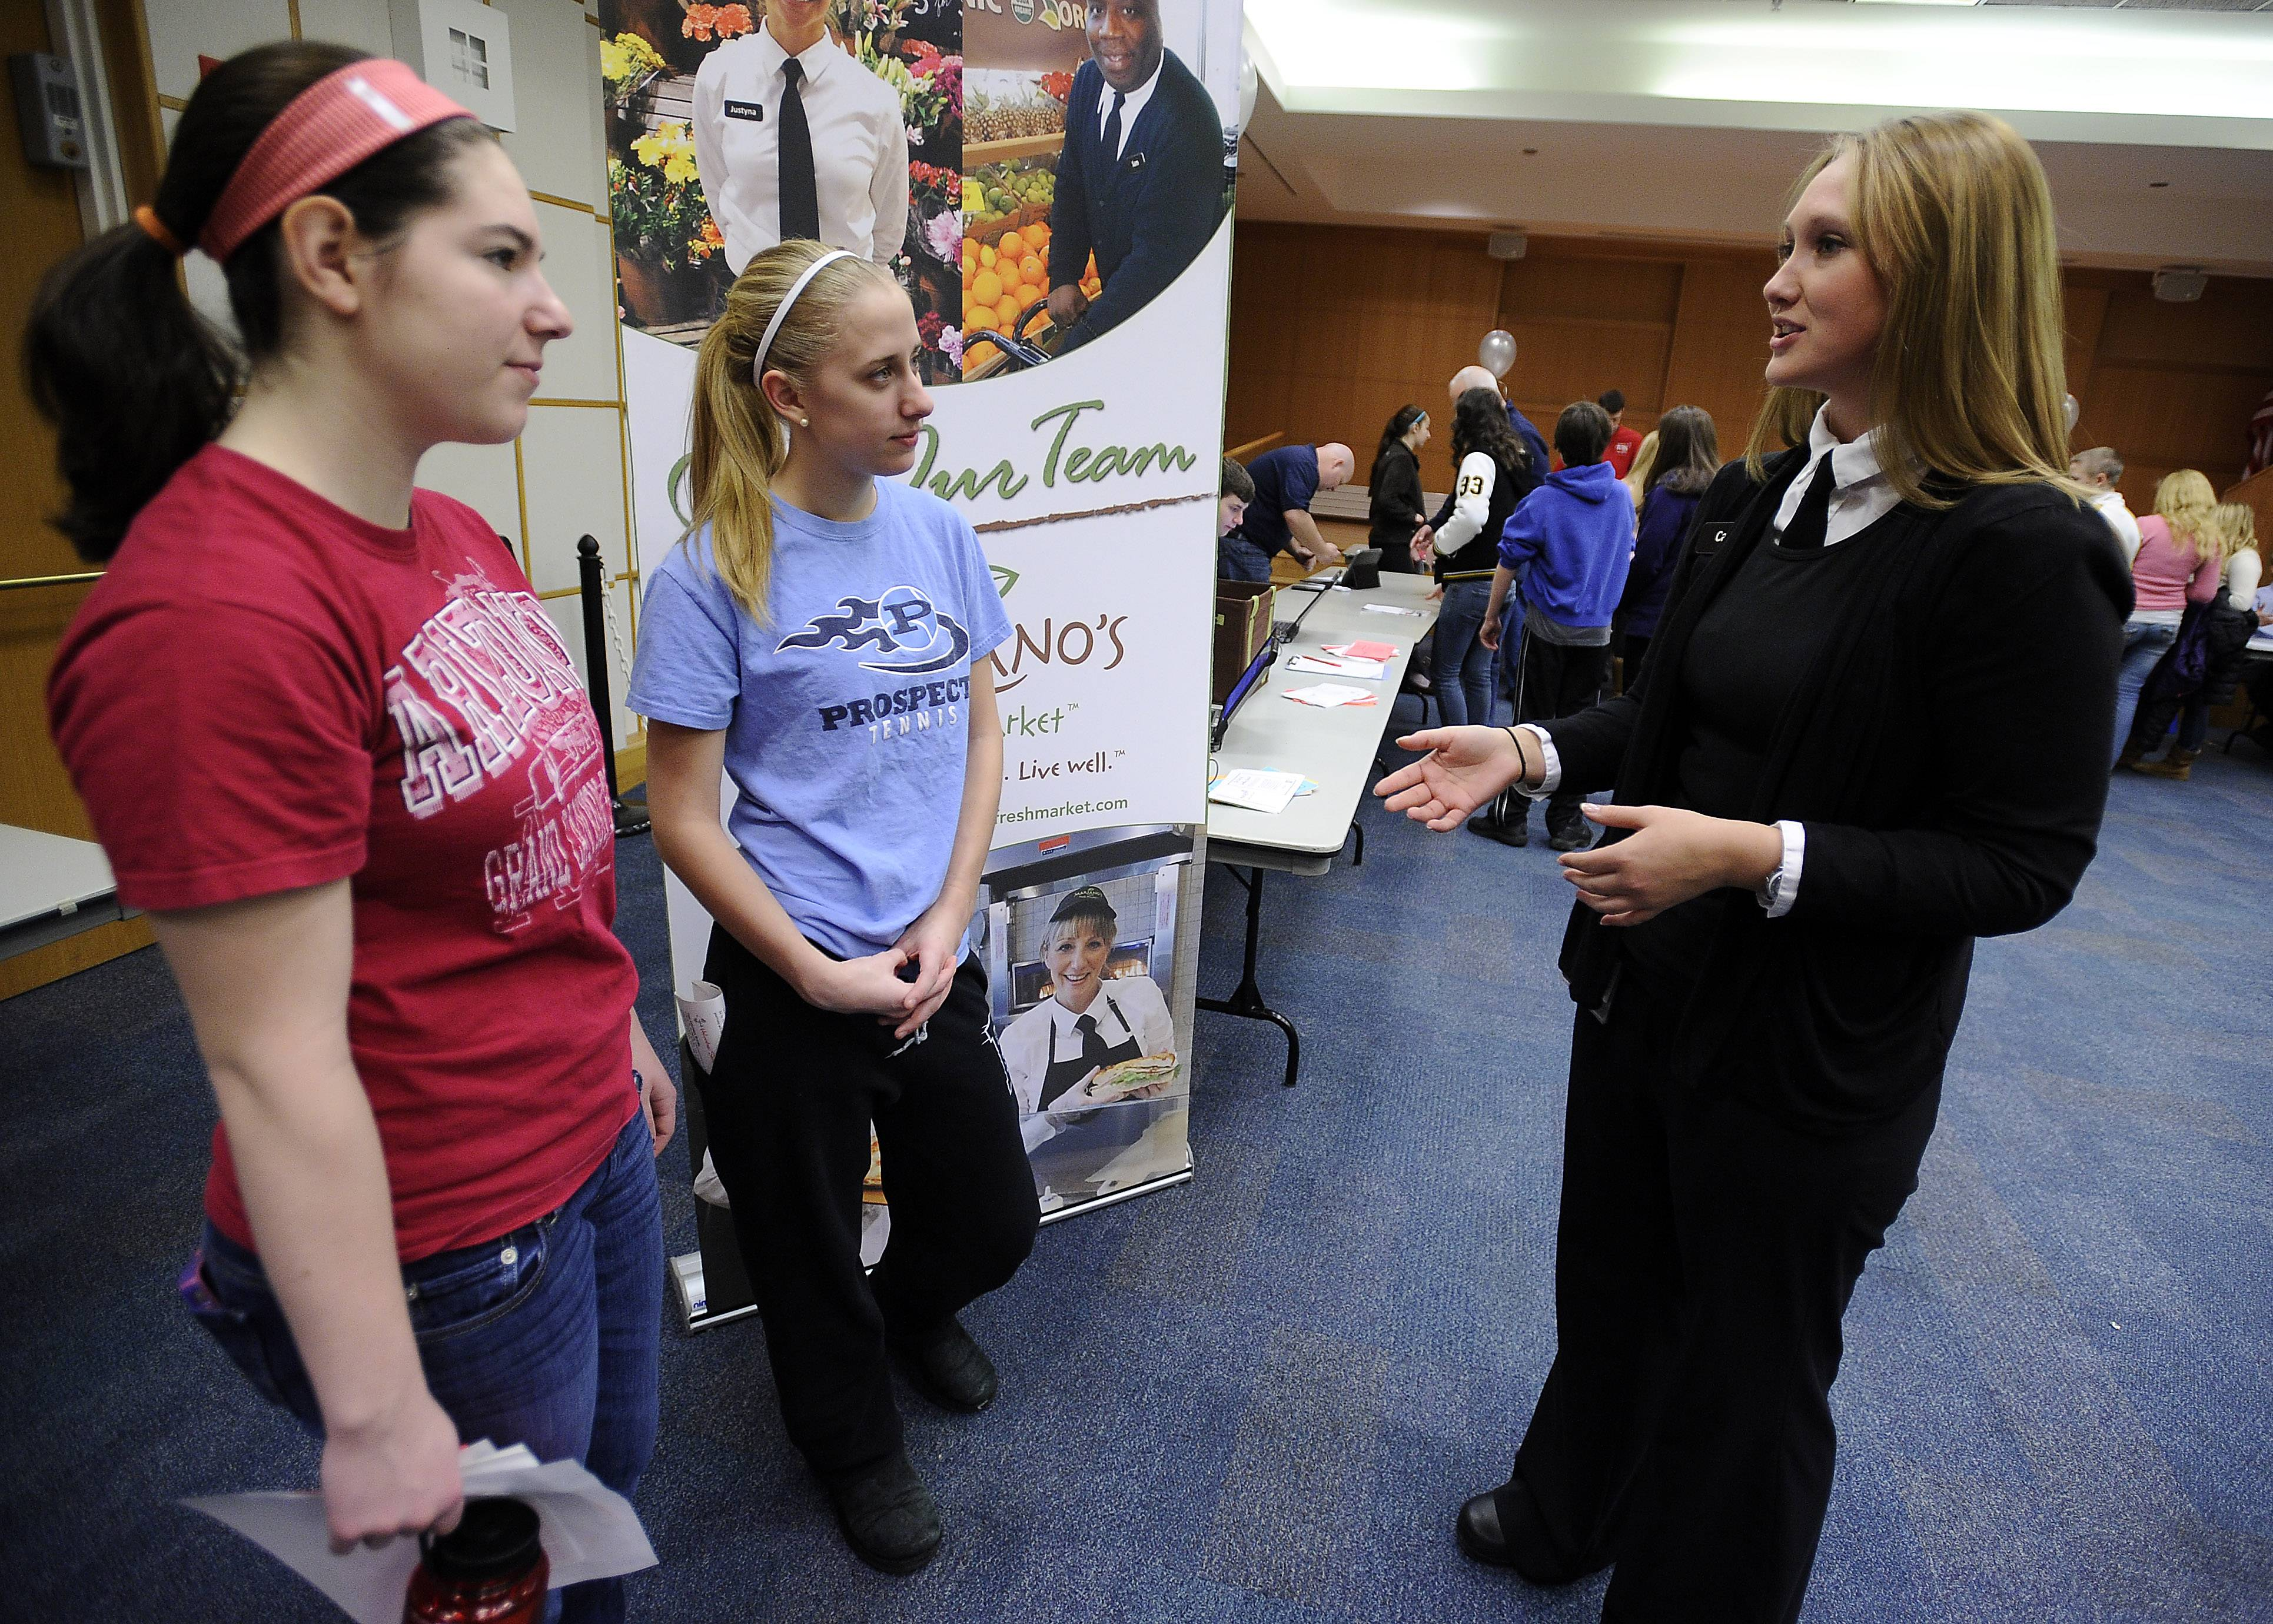 Prospect High School students Jessica Hirsh and Lauren Becherer were among nearly 300 teens to show up for last year's Arlington Heights Teen Job Fair, but representatives of only 10 businesses — including Cari Henderson of the Mariano's Fresh Market — were there. Organizers are working to get a larger business presence at this year's event, scheduled for March 8.